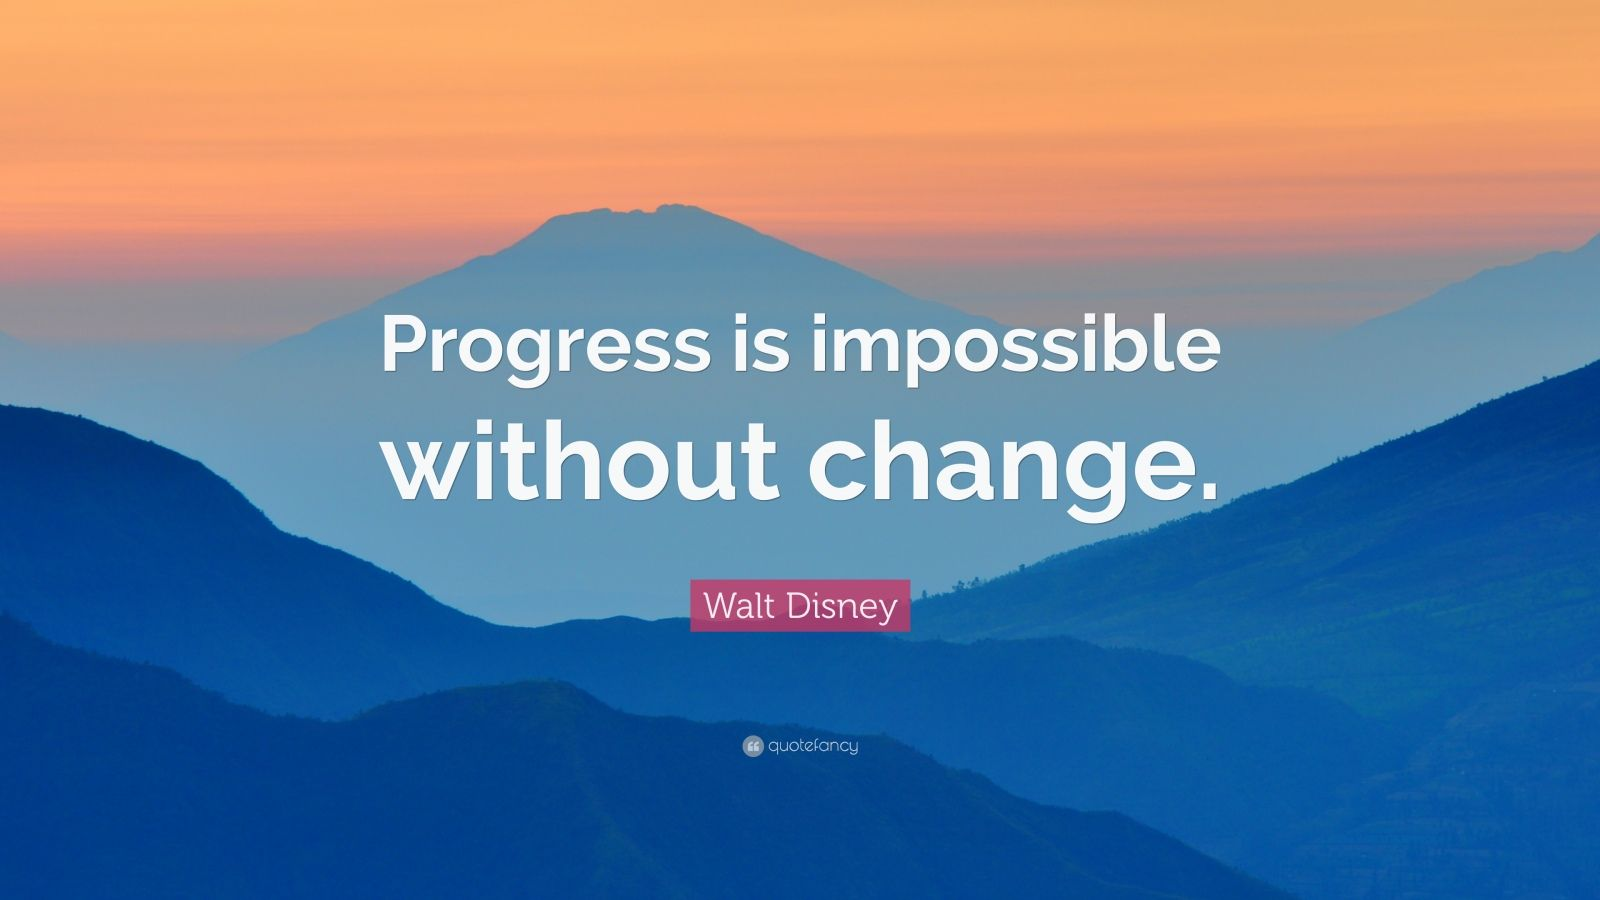 Impossible Quote Wallpaper Walt Disney Quote Progress Is Impossible Without Change